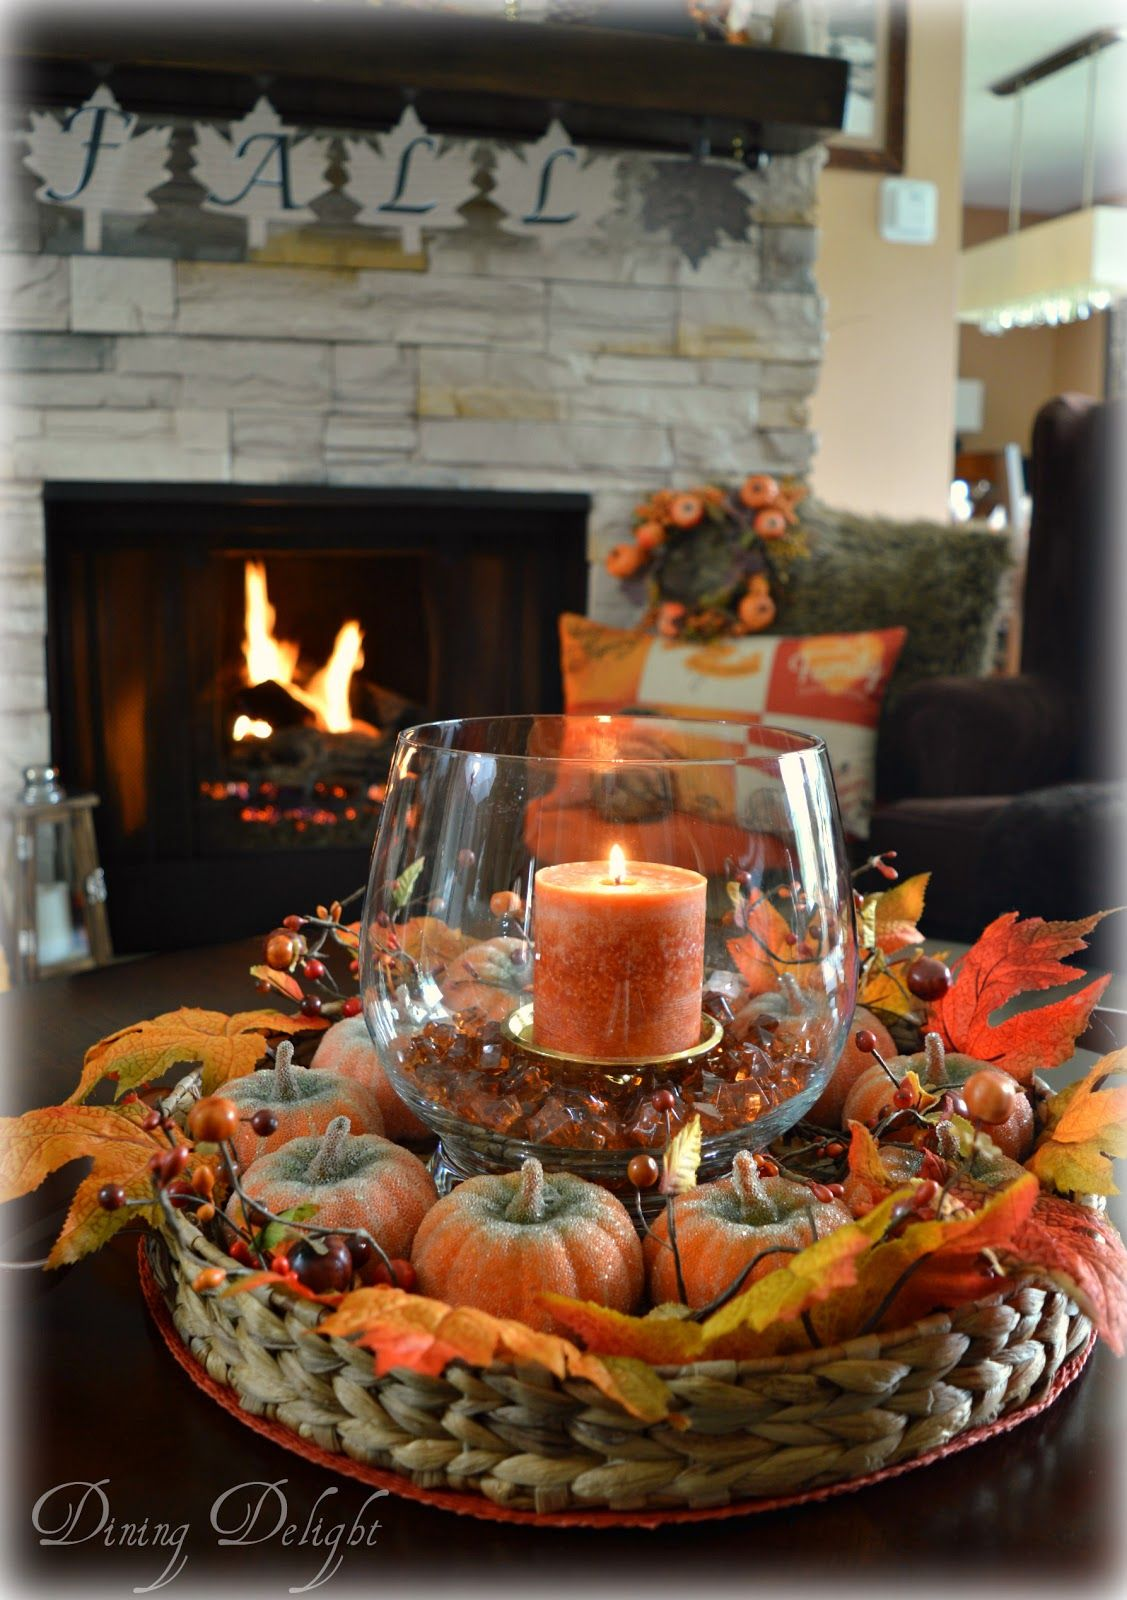 High Quality Do You Struggle With What To Put On Your Coffee Table For A Seasonal  Centerpiece?